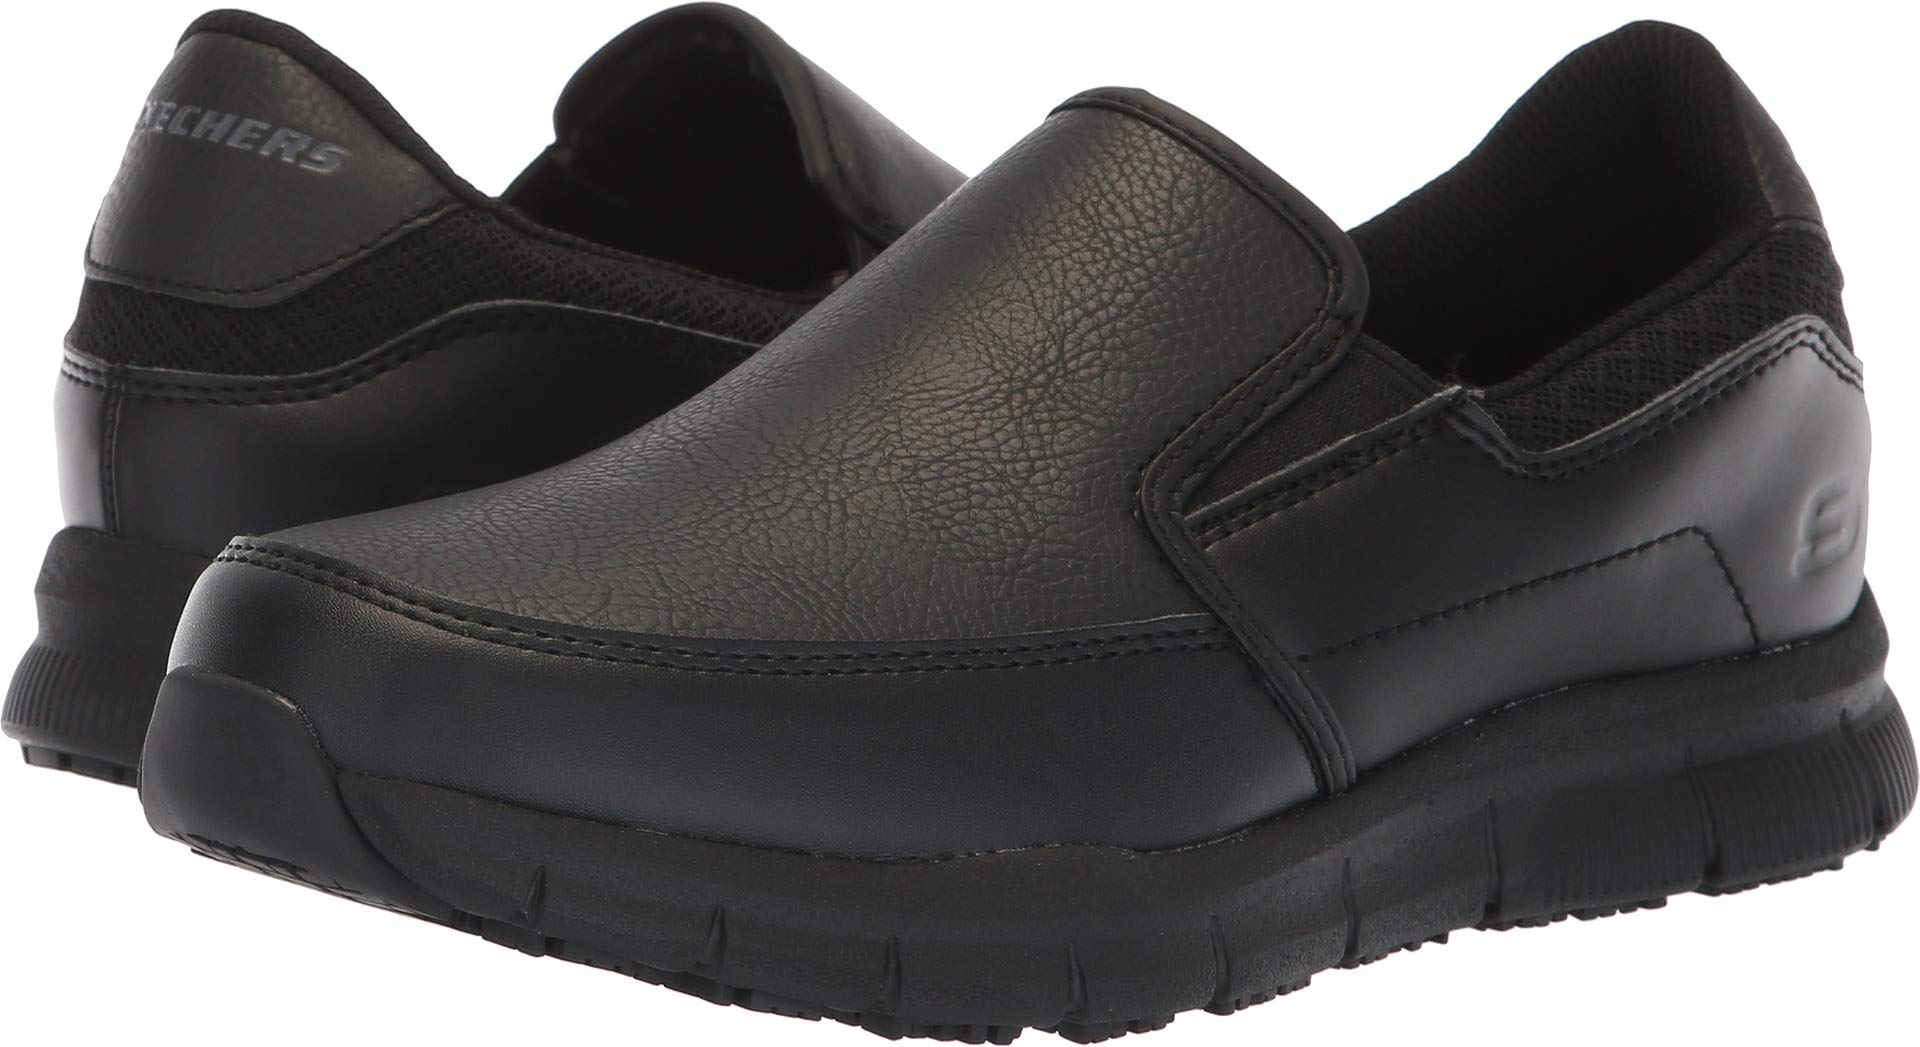 Skechers for Work Women's Nampa-Annod Food Service Shoe,Black Polyurethane,9 M US by Skechers